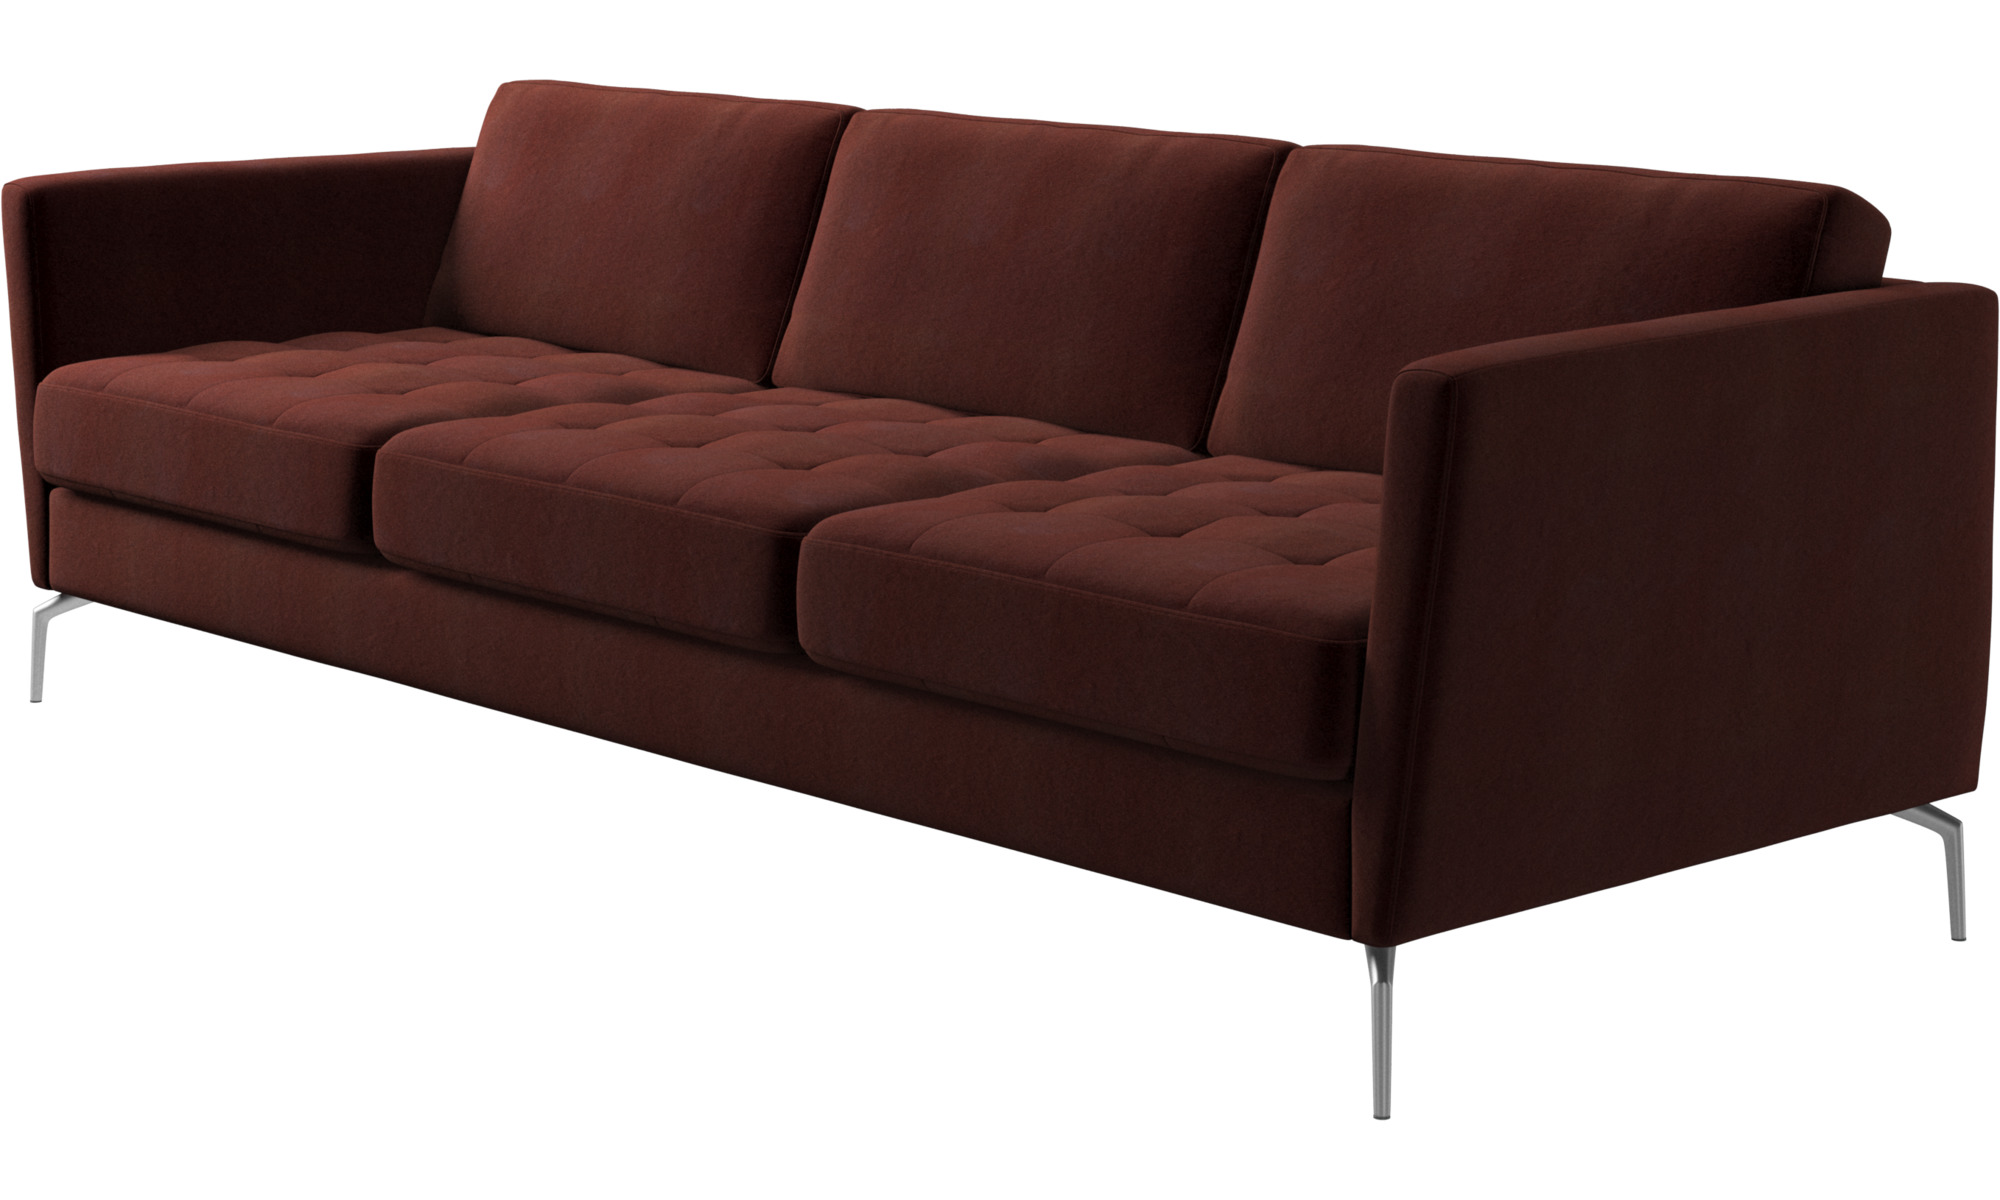 3 Seater Sofas Osaka Sofa Tufted